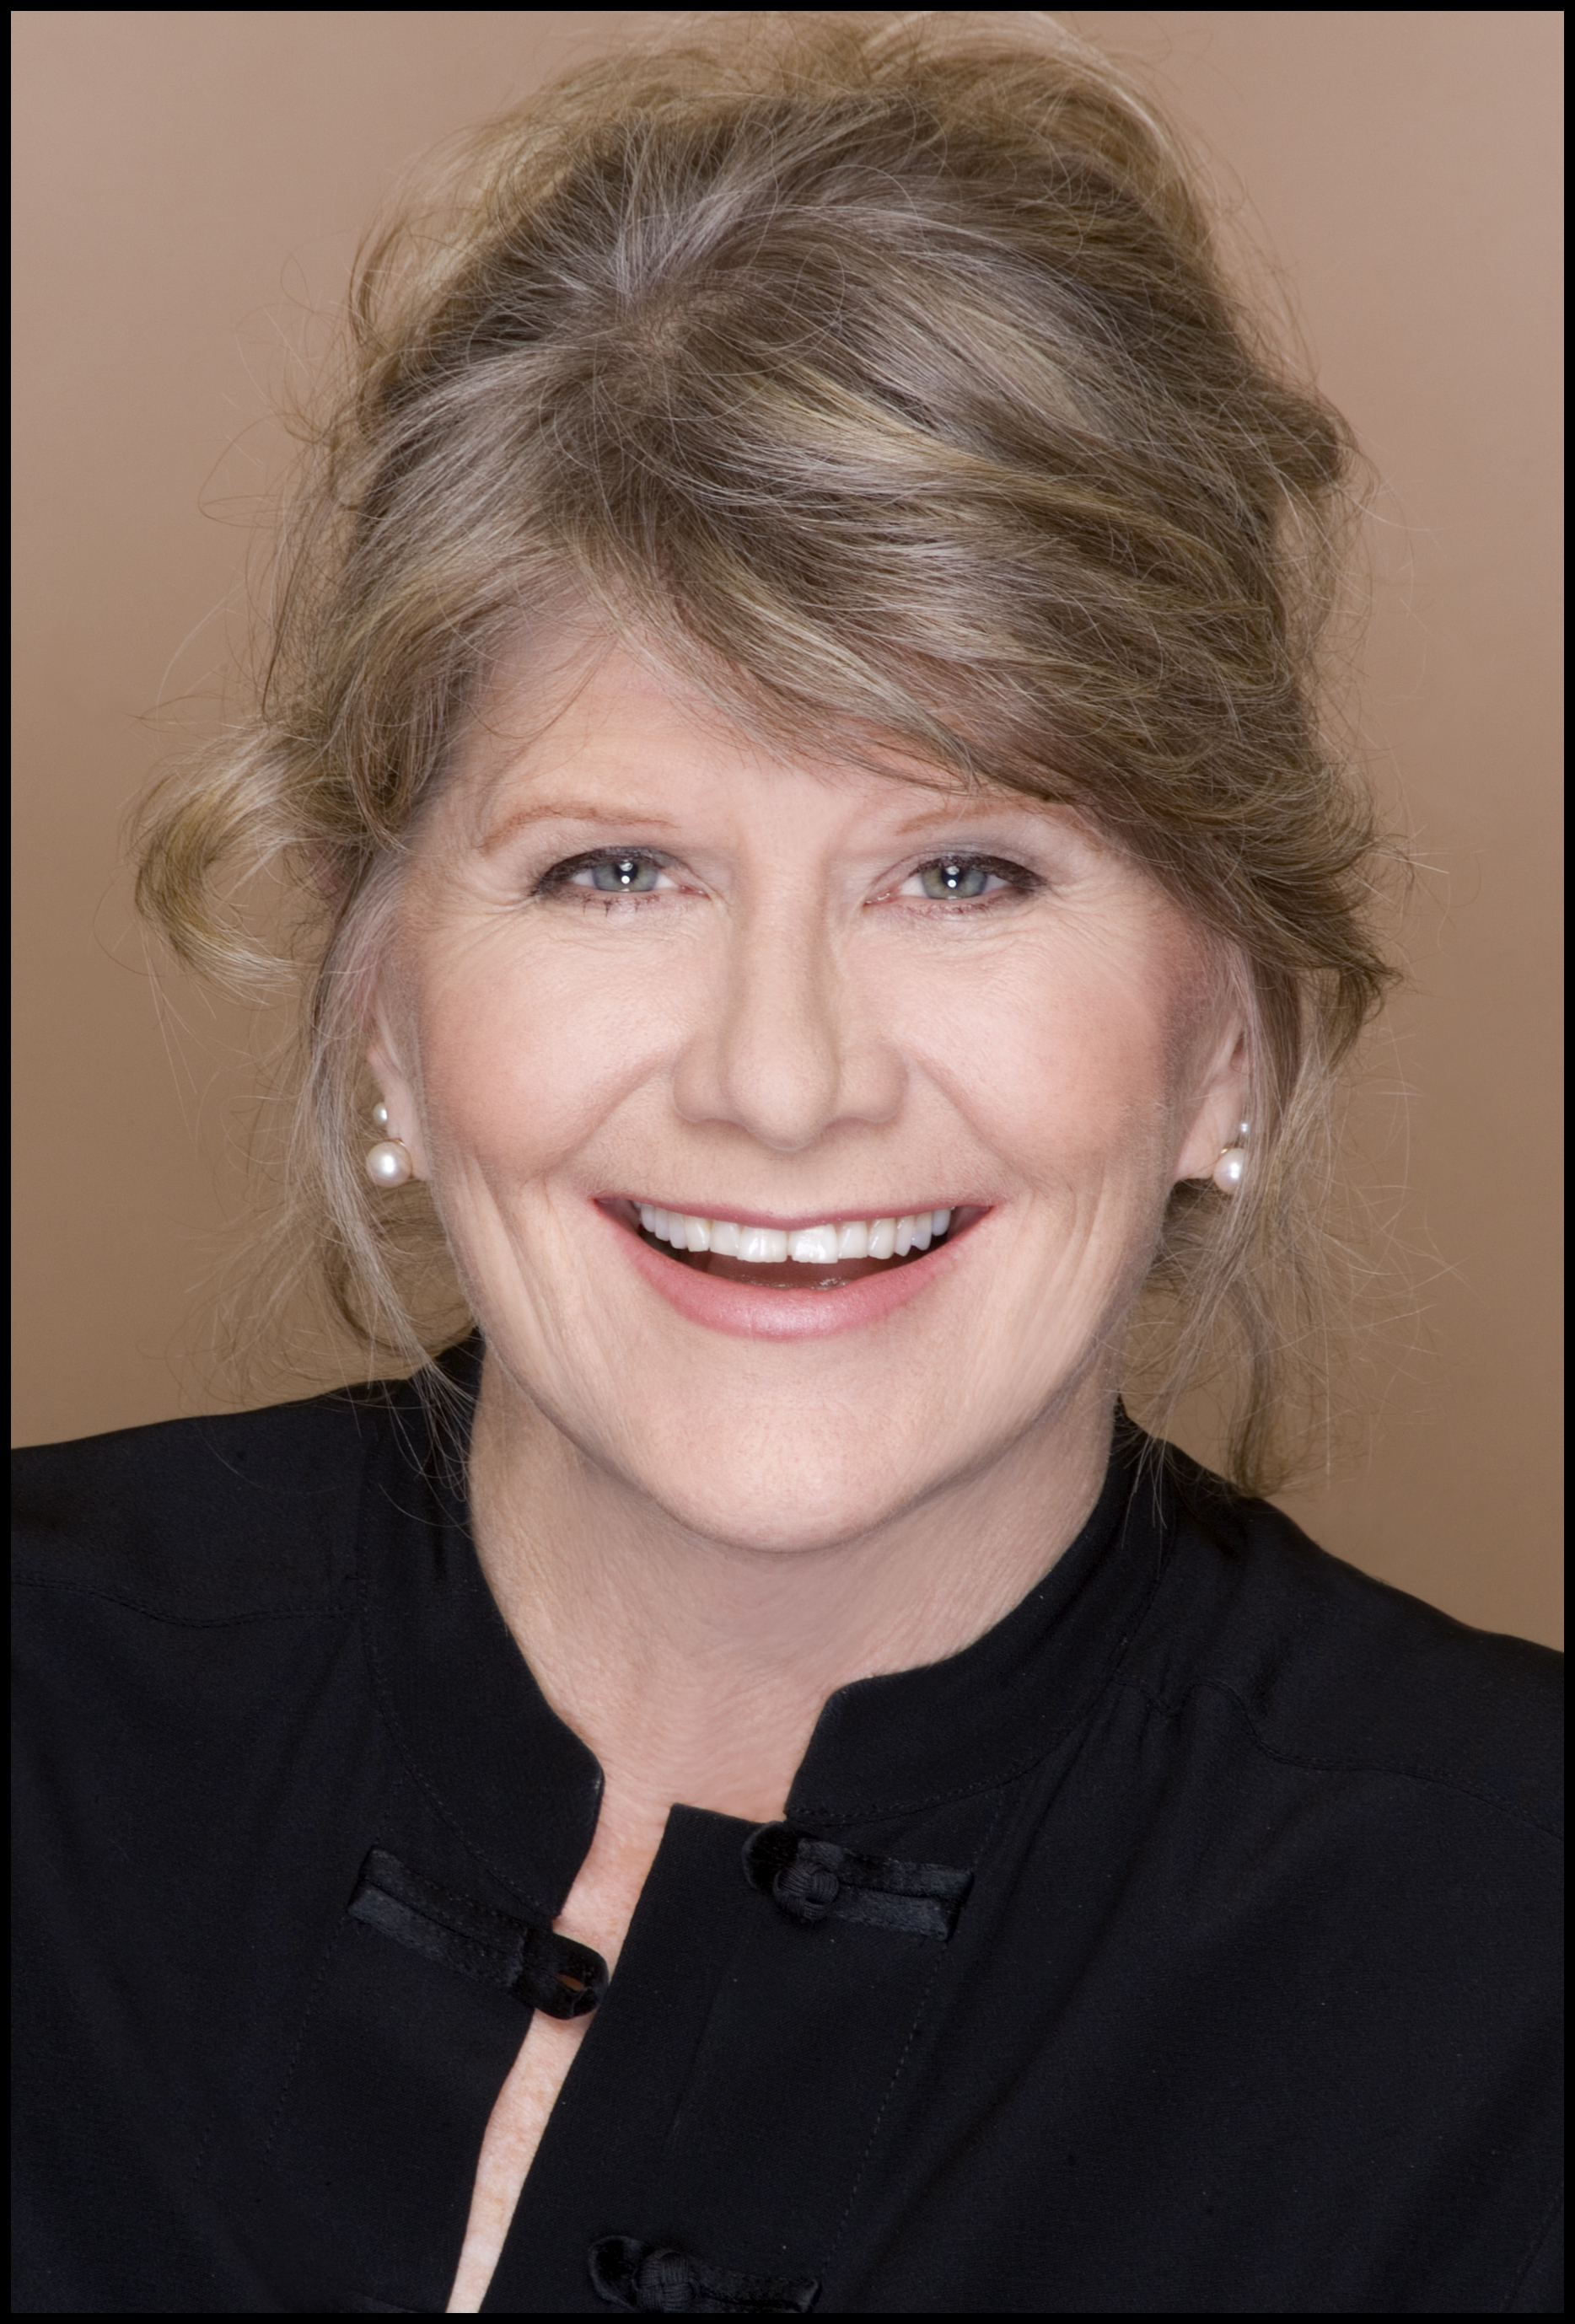 Judith Ivey born September 4, 1951 (age 67)